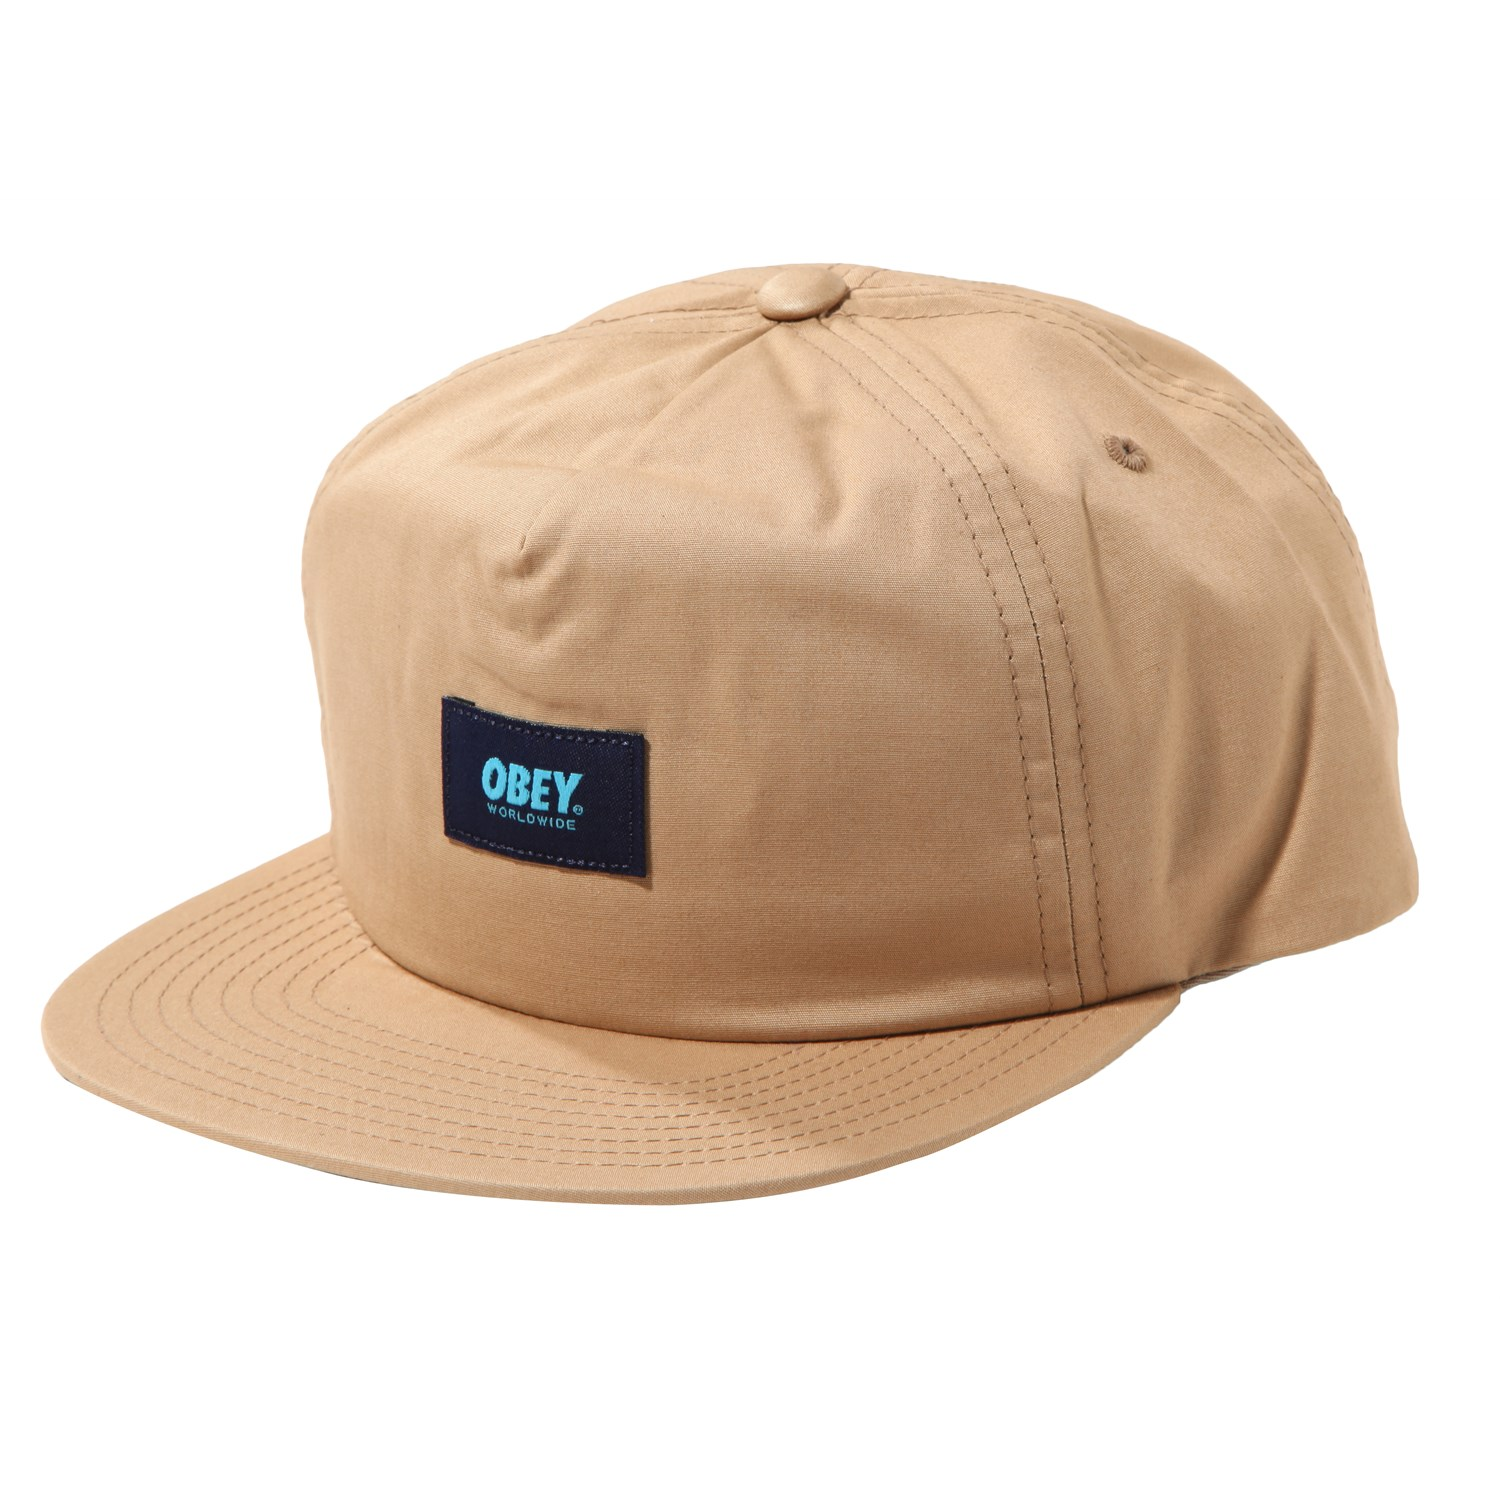 obey clothing avignon hat evo outlet